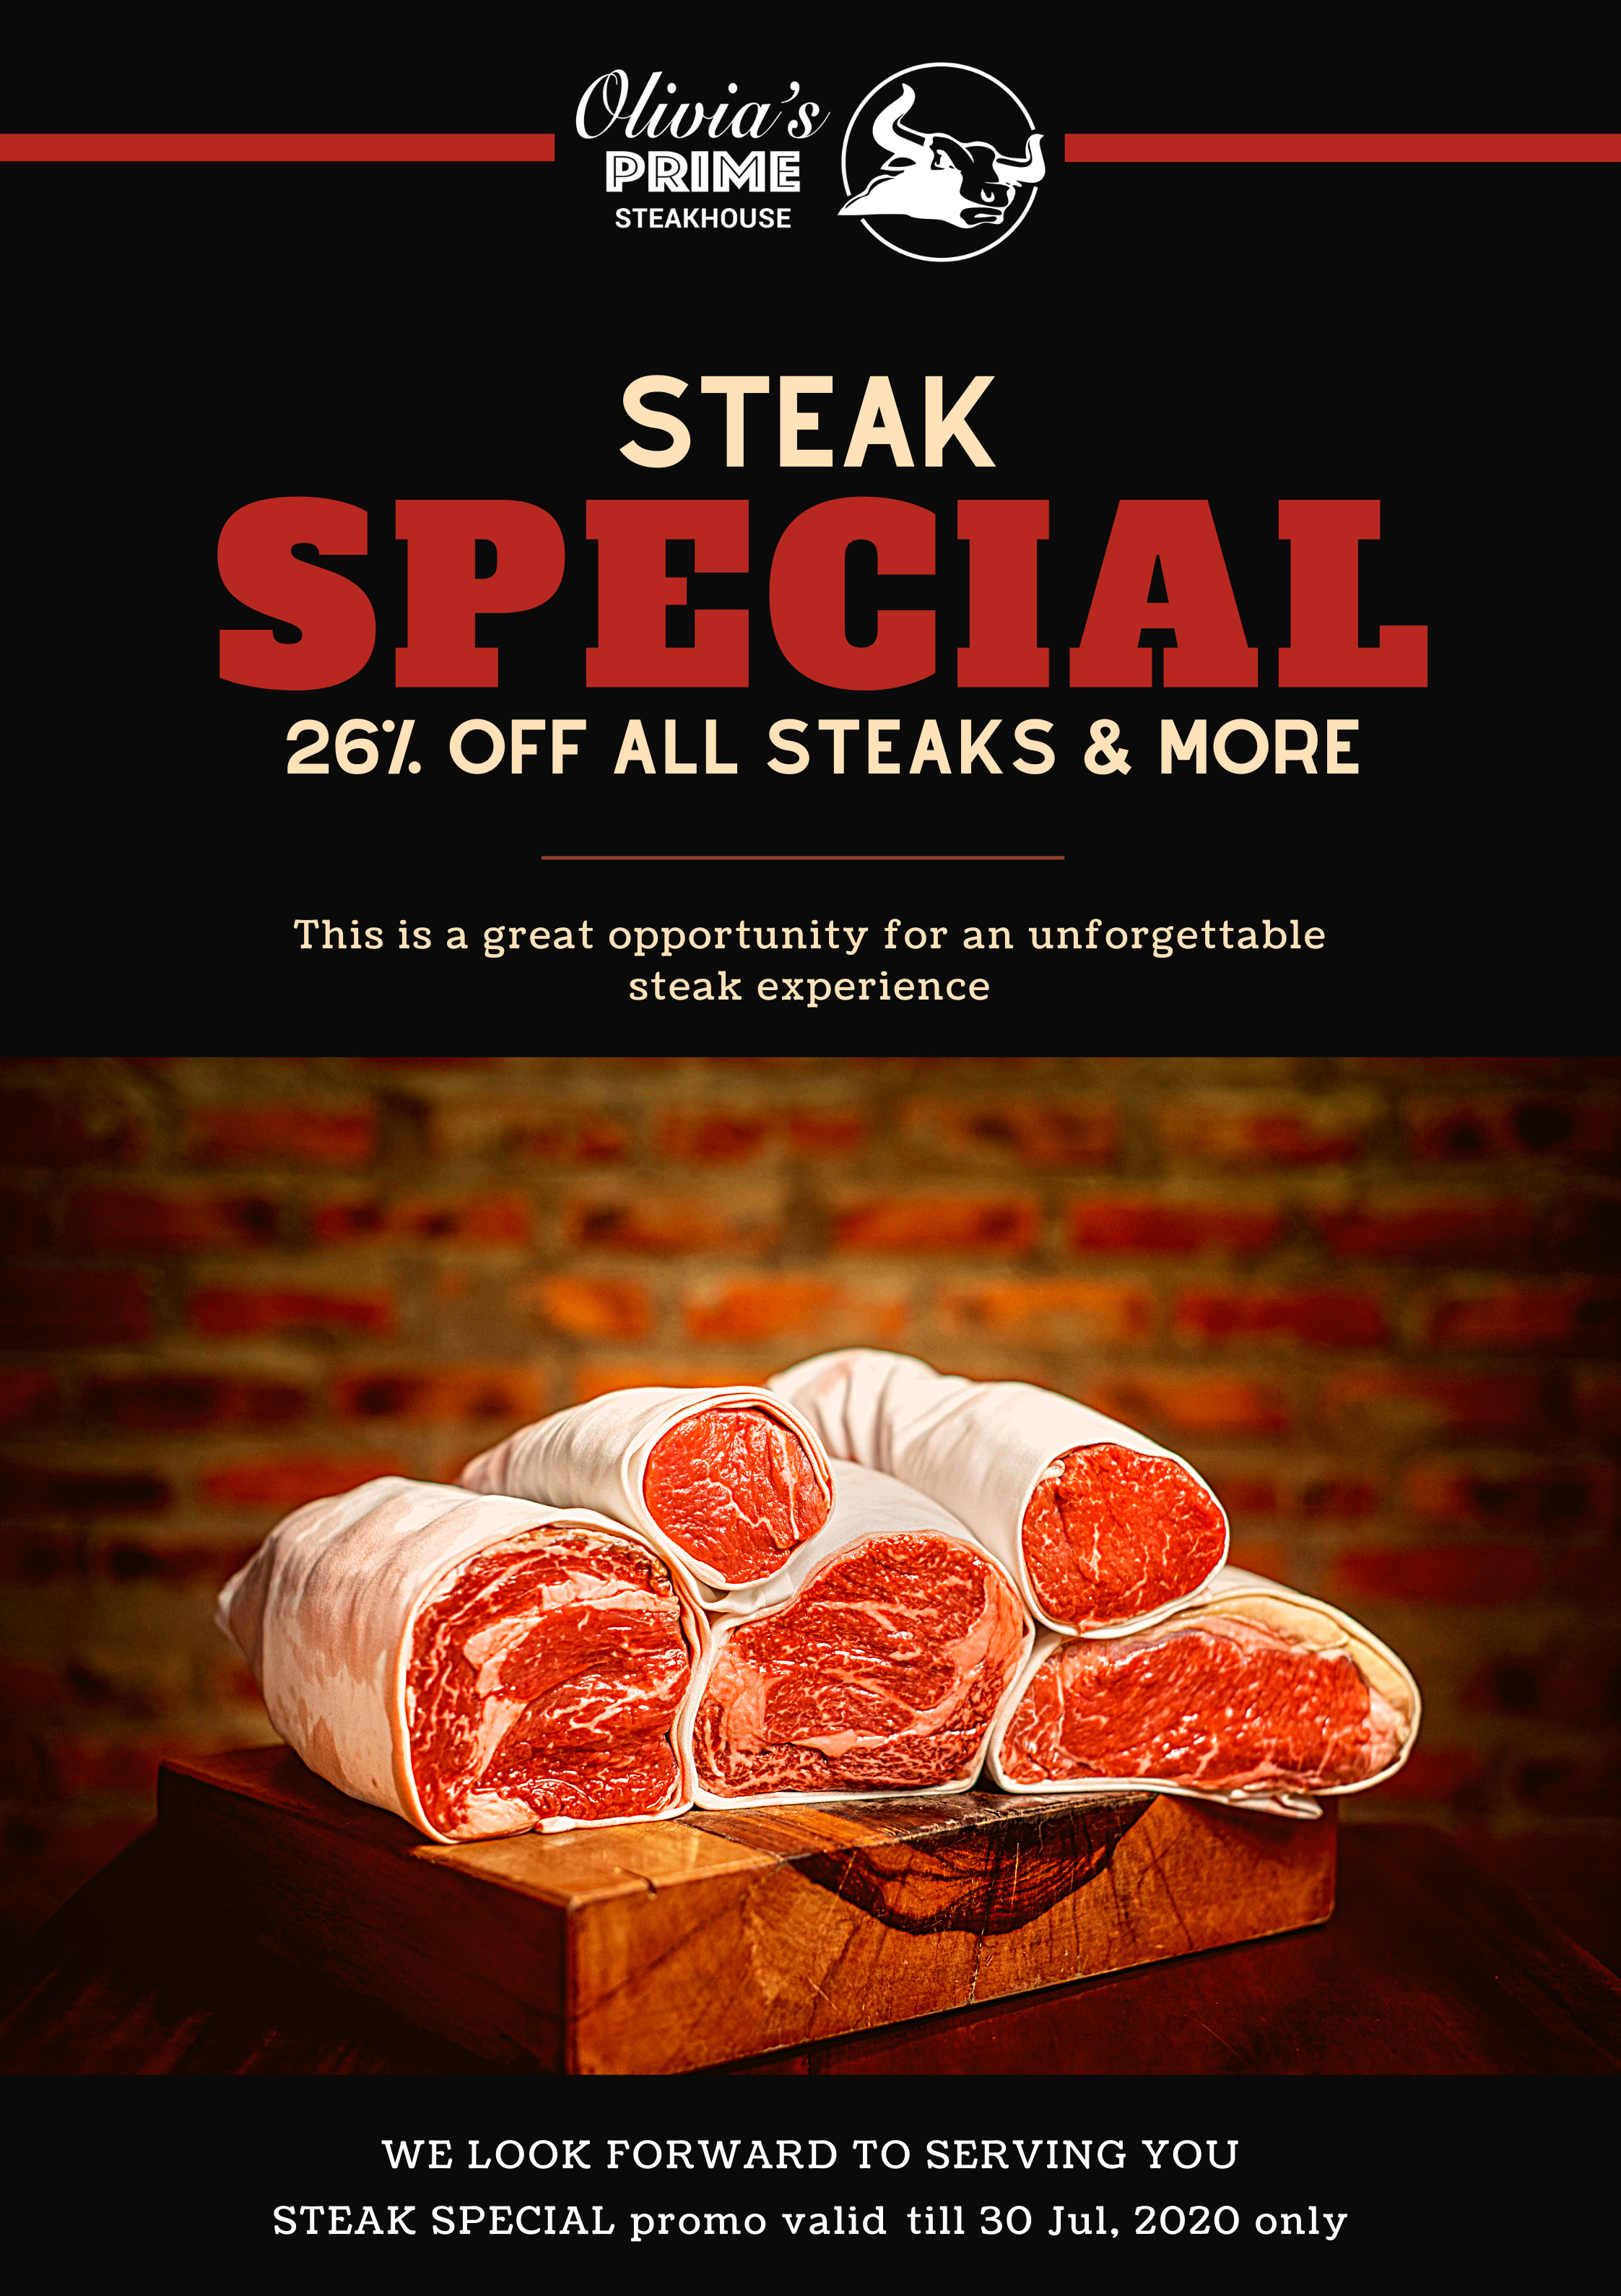 Olivia's Prime Steakhouse - STEAK SPECIAL PROMOTION EXTEND